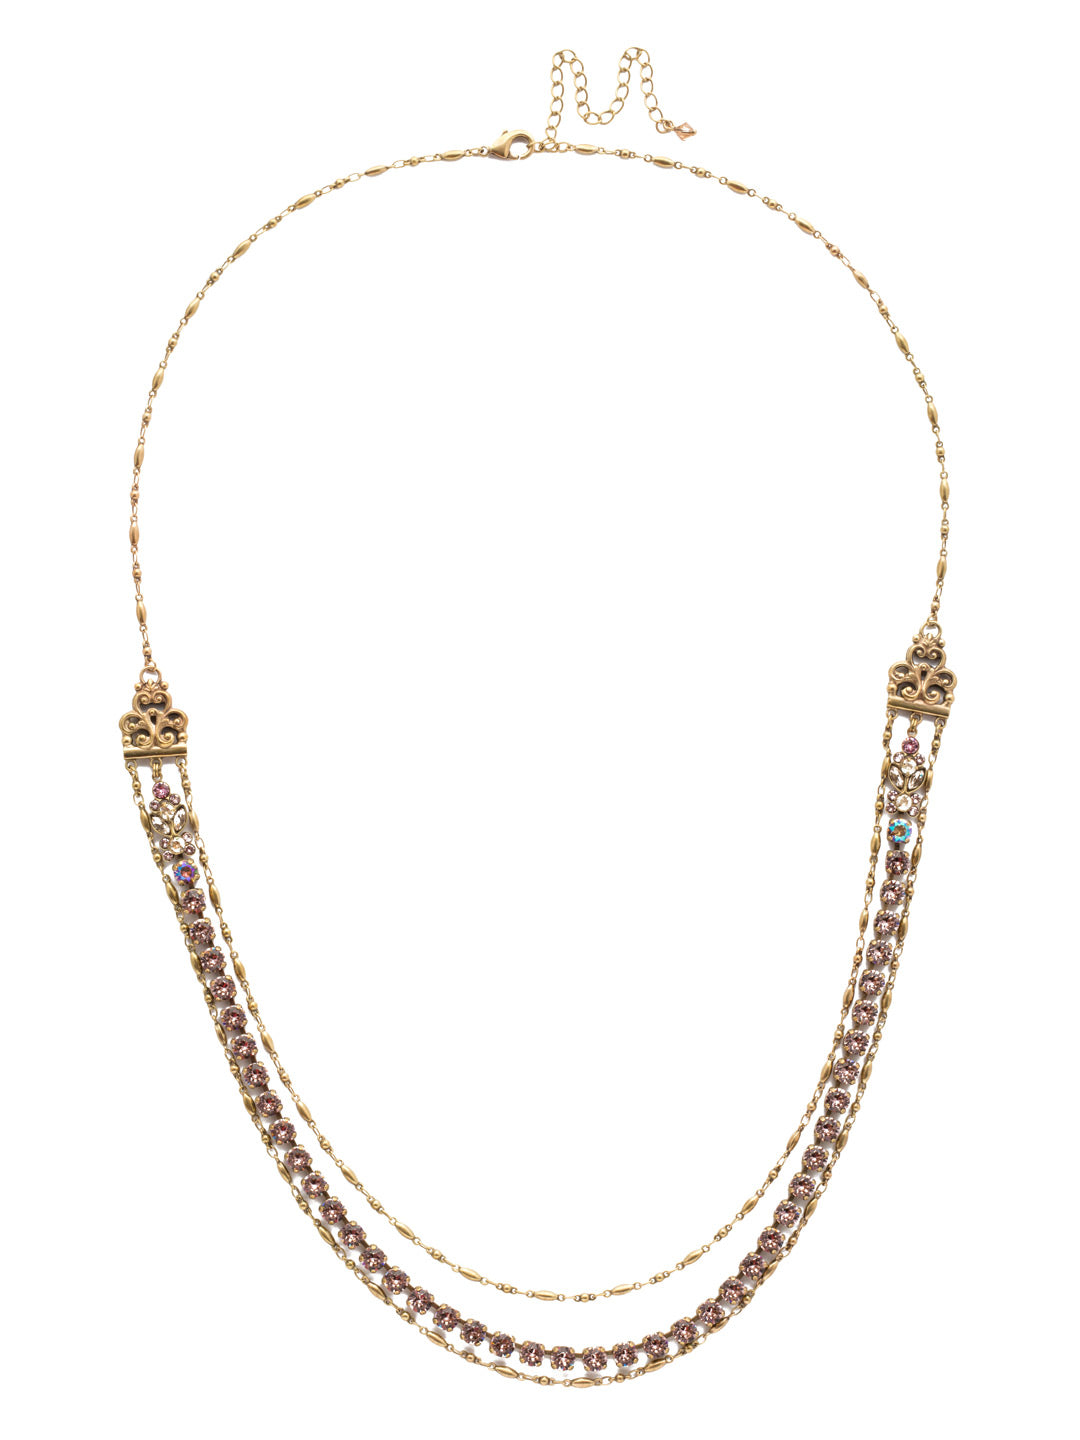 Petronilla Long Strand Necklace - NEA6AGBCM